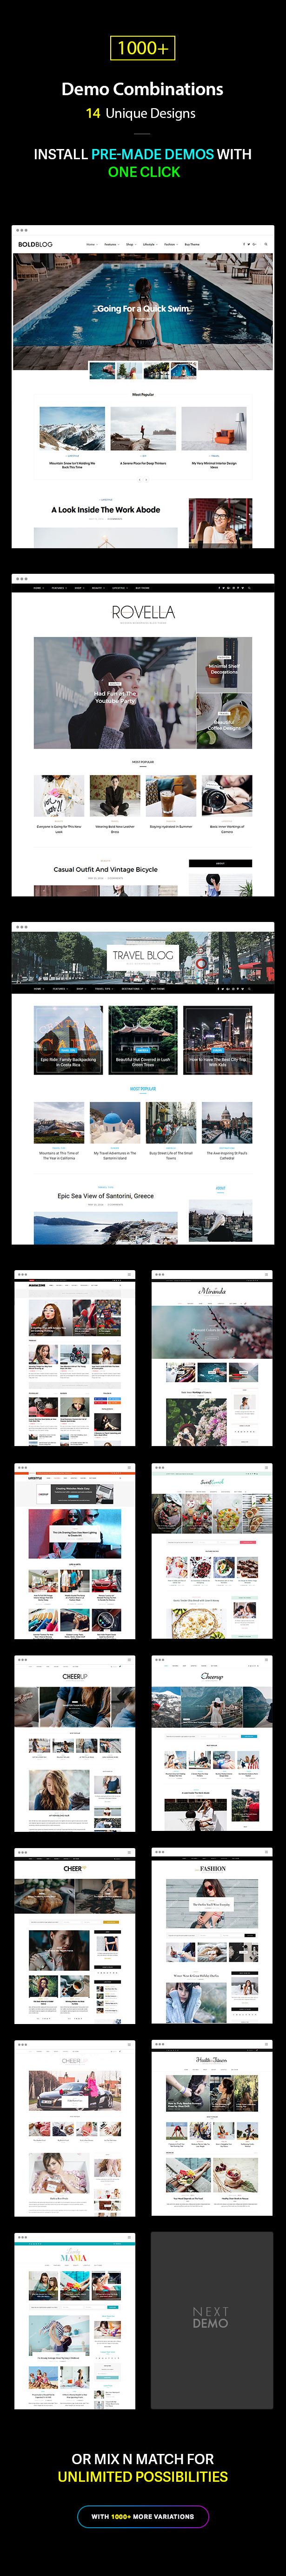 Multiple Blog and Magazine Layouts, 14+ Unique Designs